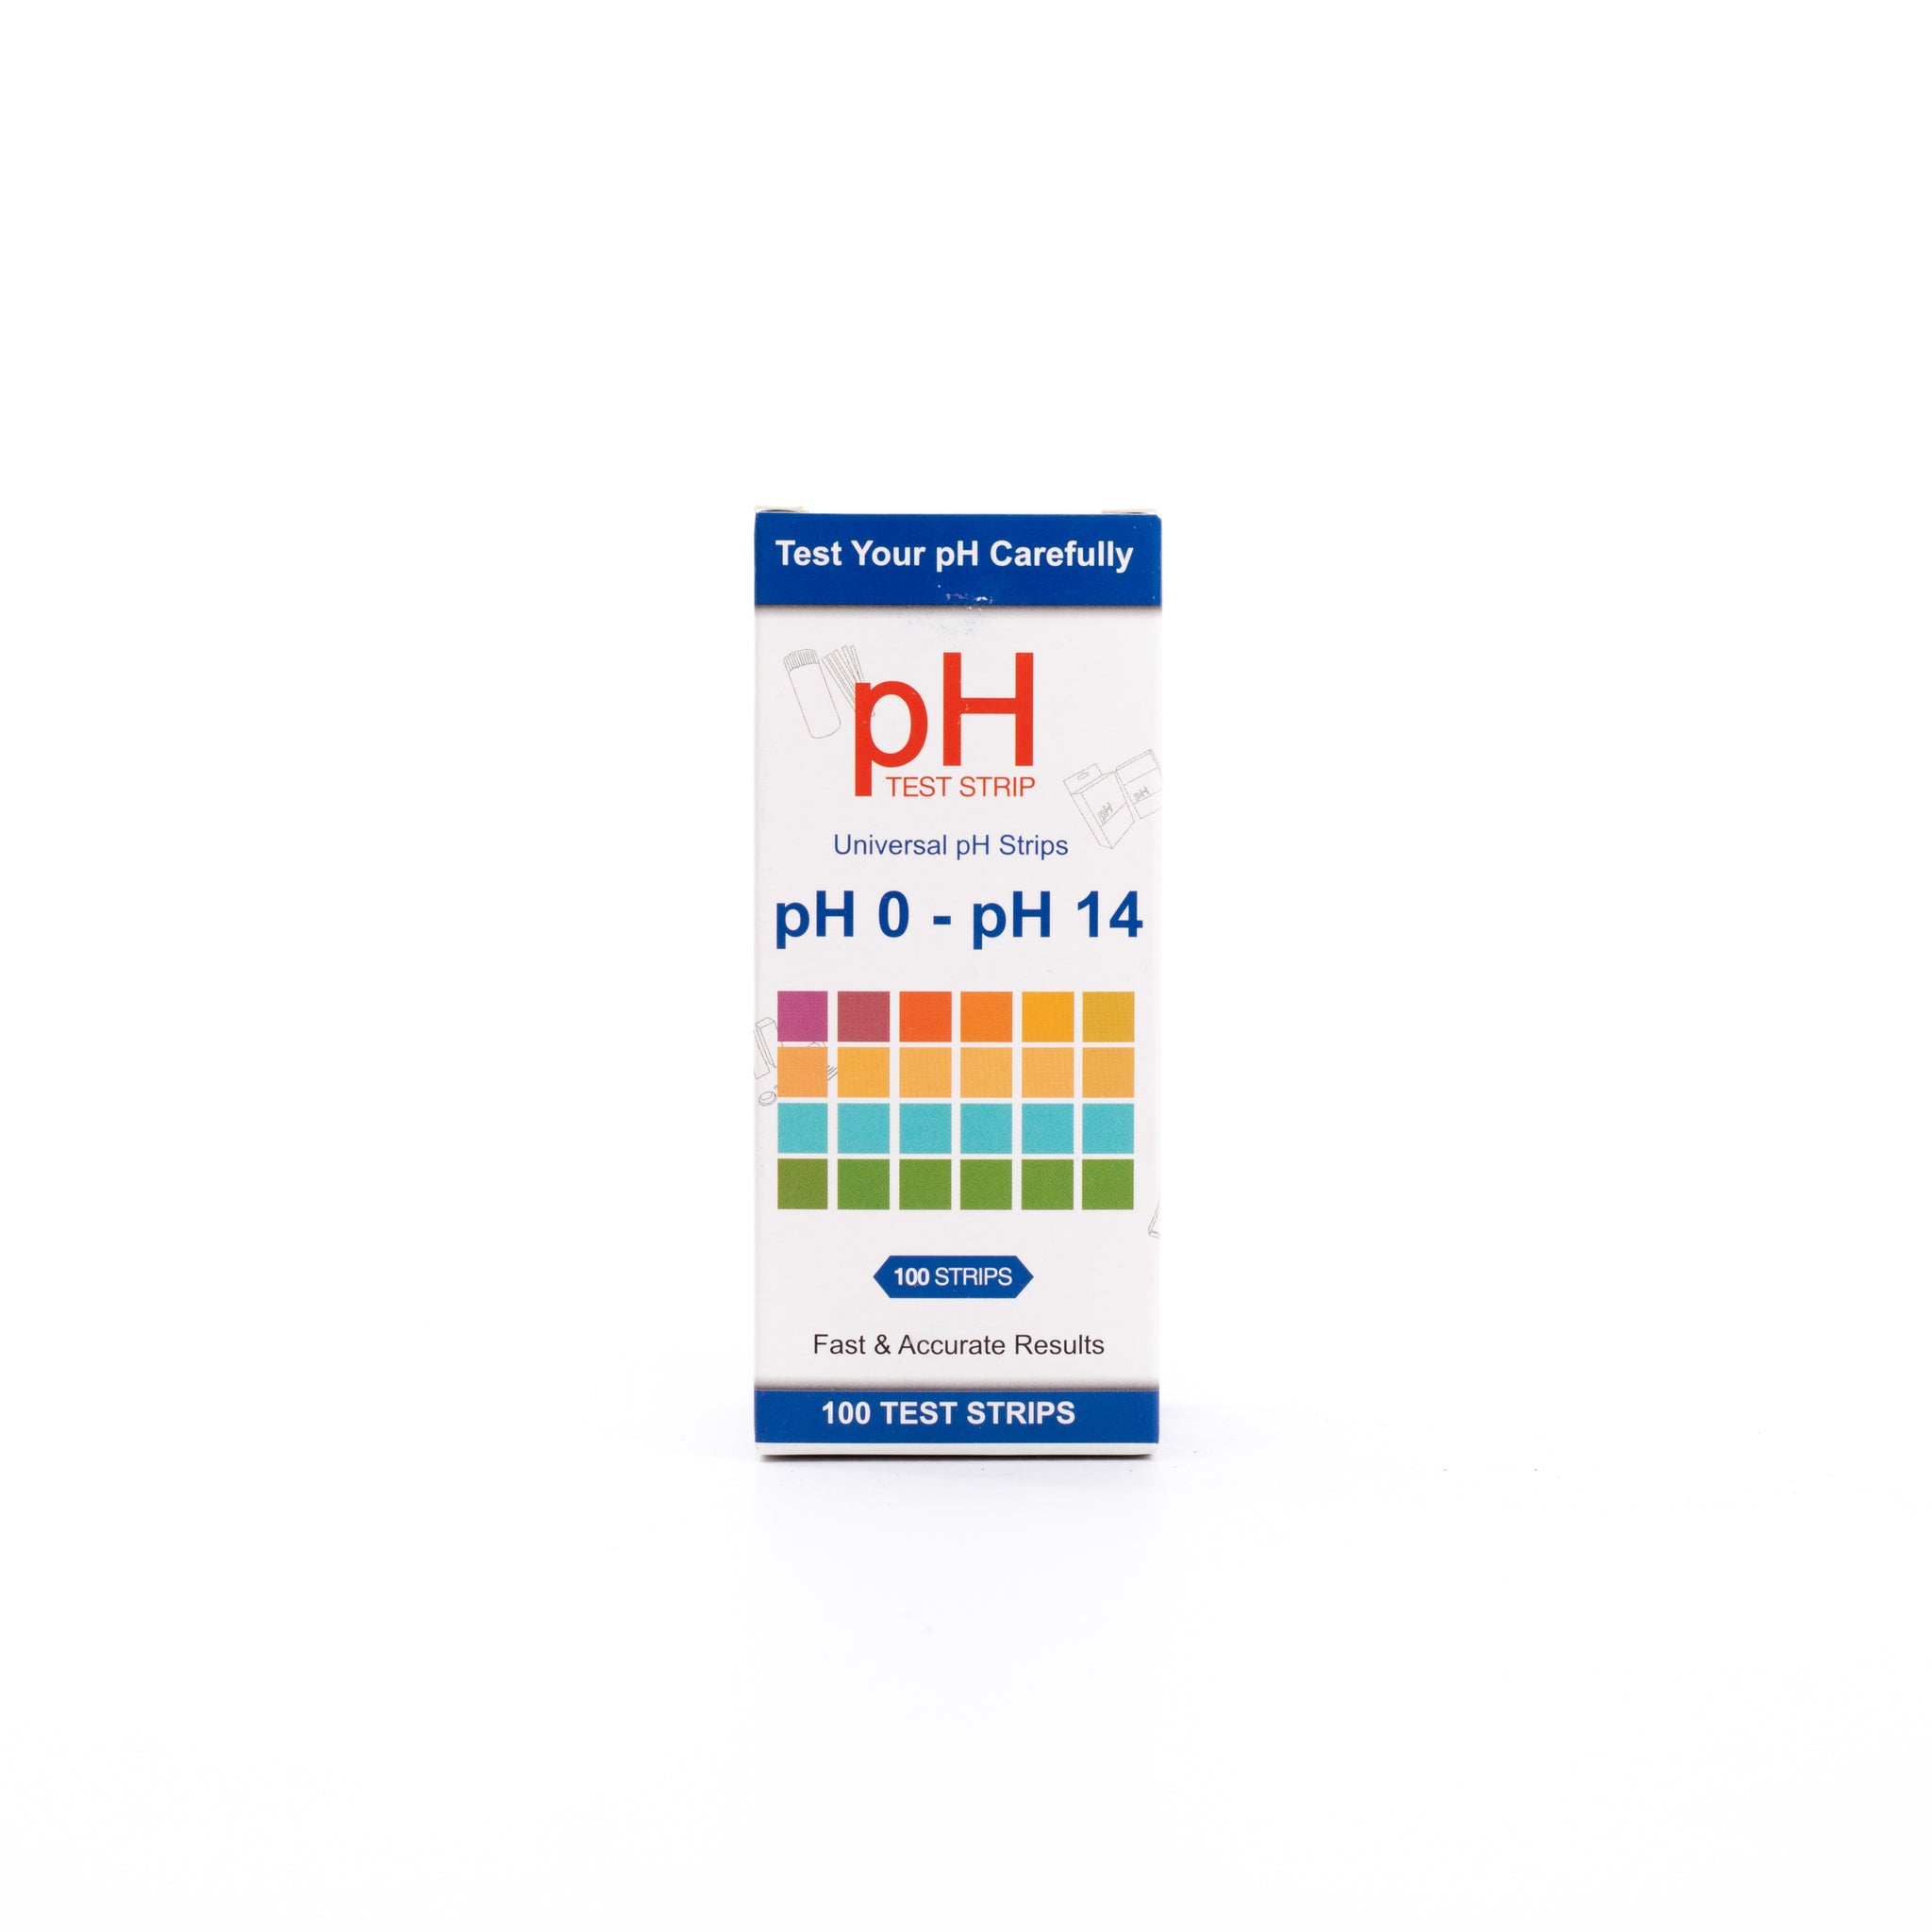 URS - pH 0 to pH 14 - URINE/SALIVA/WATER TEST - 100 STRIPS